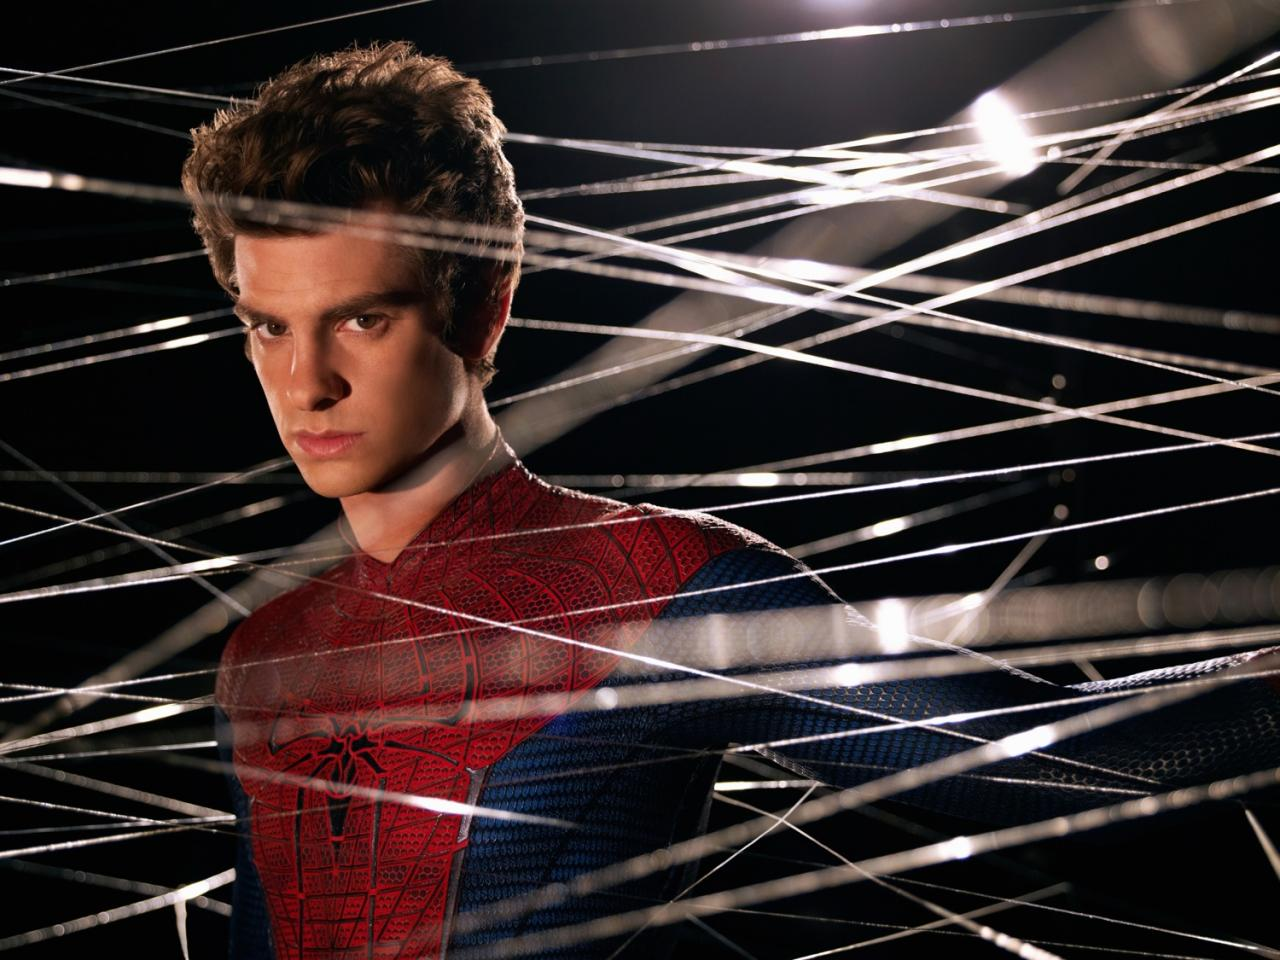 laugana entertainment vulture malkovich people were spidey comics know mysterio throw probably three anyway hell raimi lizard with expecting like didnt thread 2012 amazing spider-man july this movie excited since actor personally john confirmed